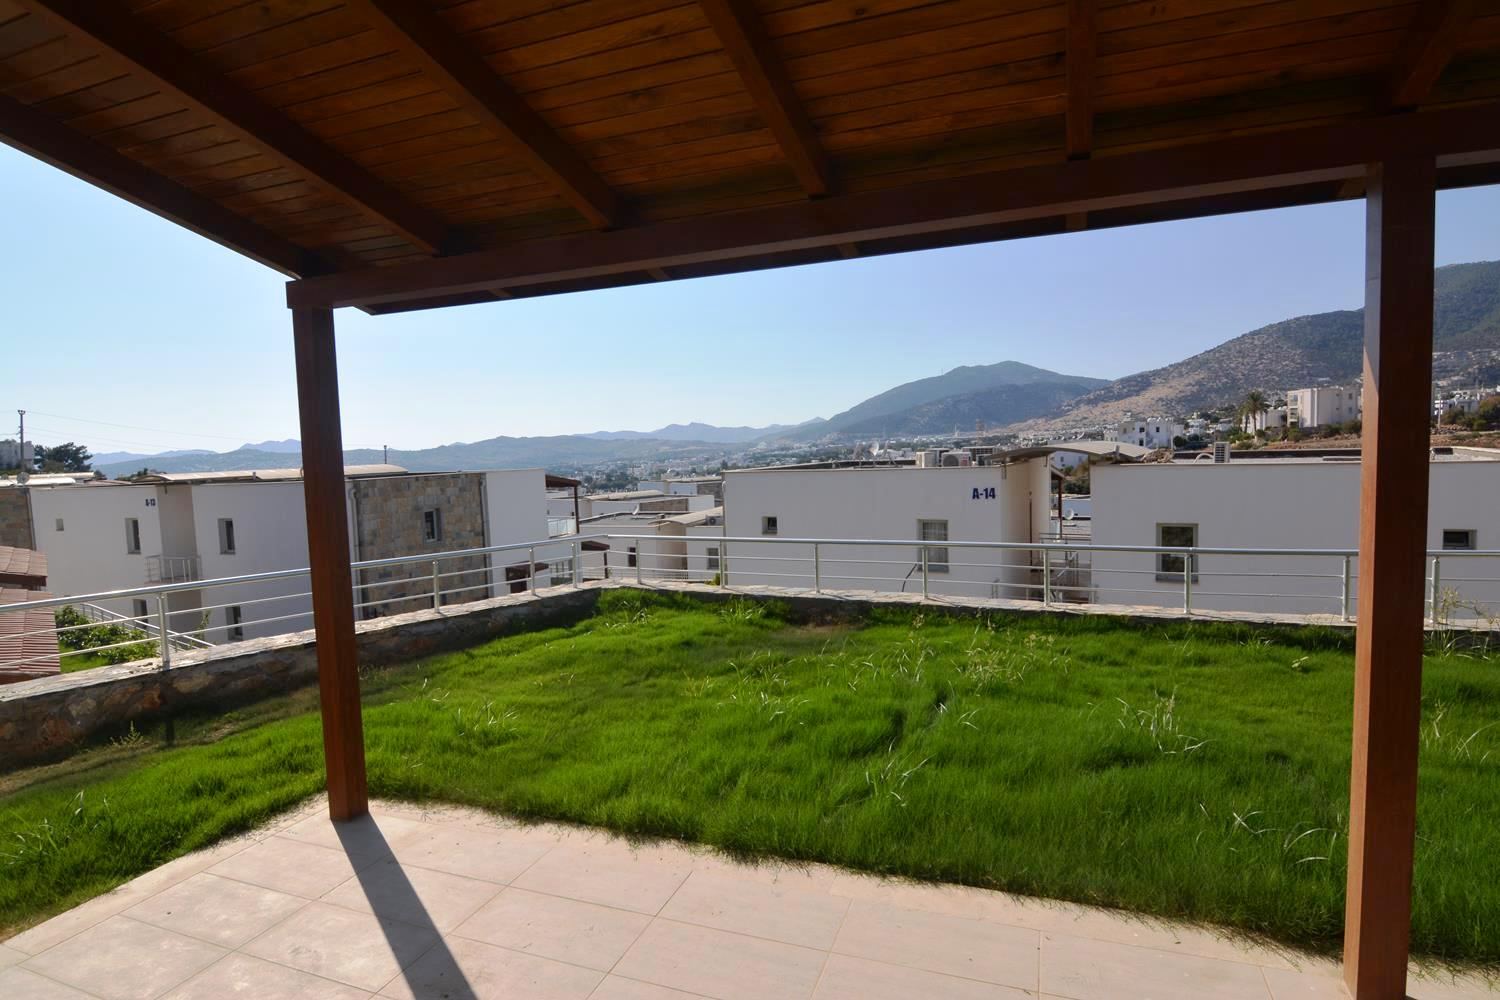 19361_import_Bodrum-Konacik-Apartments-16